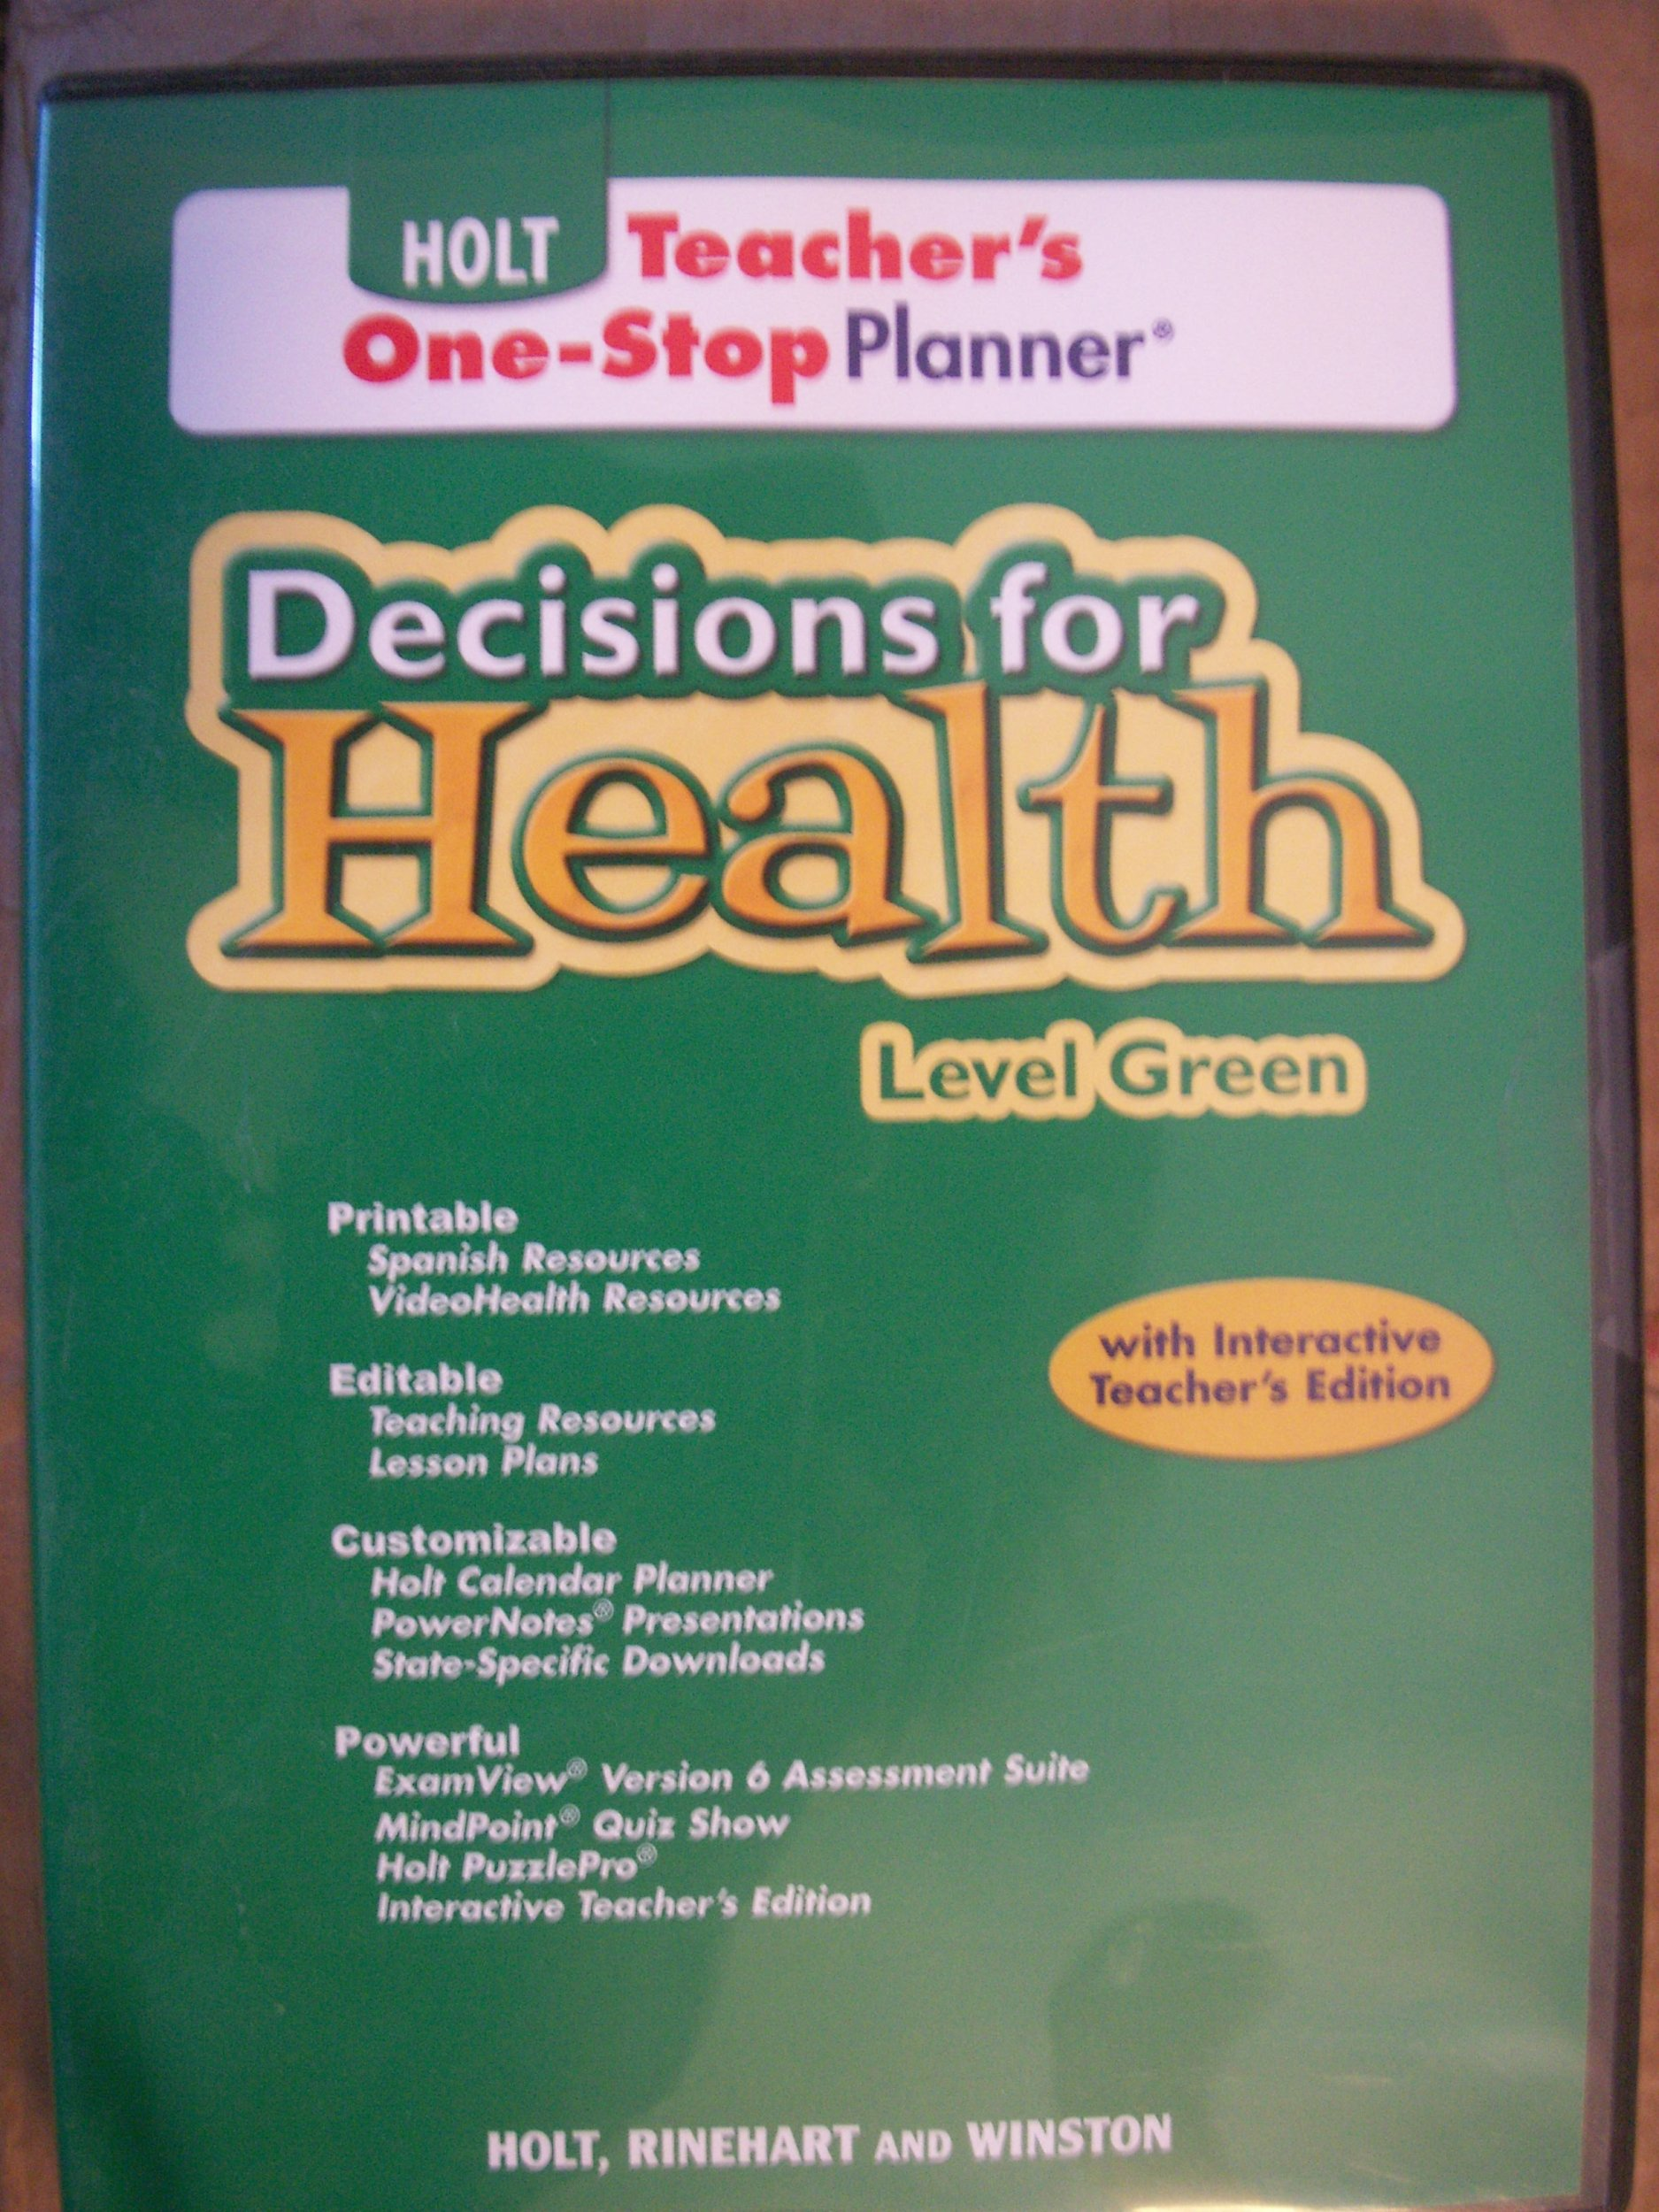 Holt Teacher's One-Stop Planner Decisions for Health Level Green